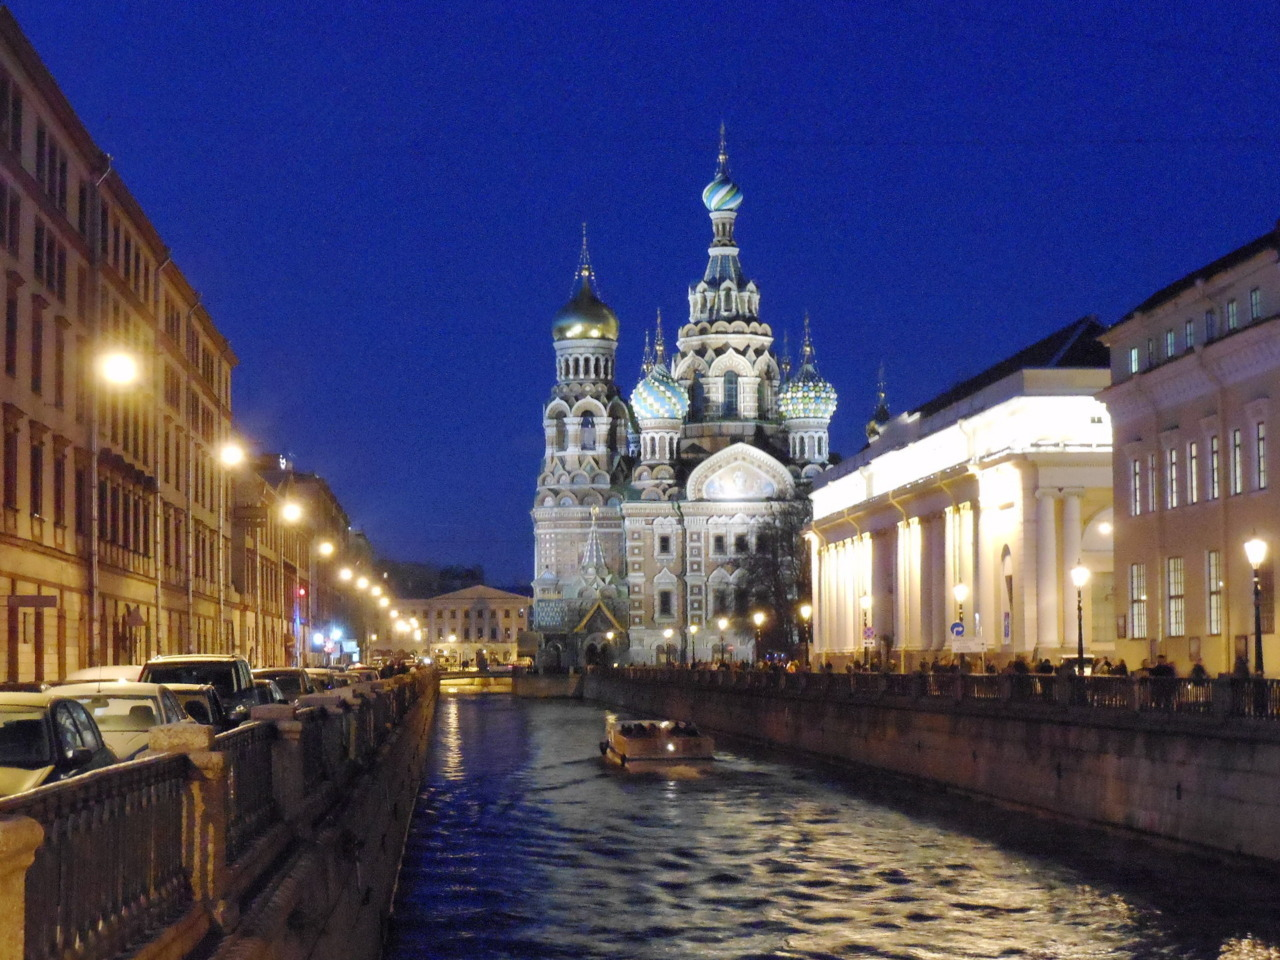 Храм Спаса на Крови ночью (Church of the Savior on Spilled Blood at Night) St. Petersburg, October 2011